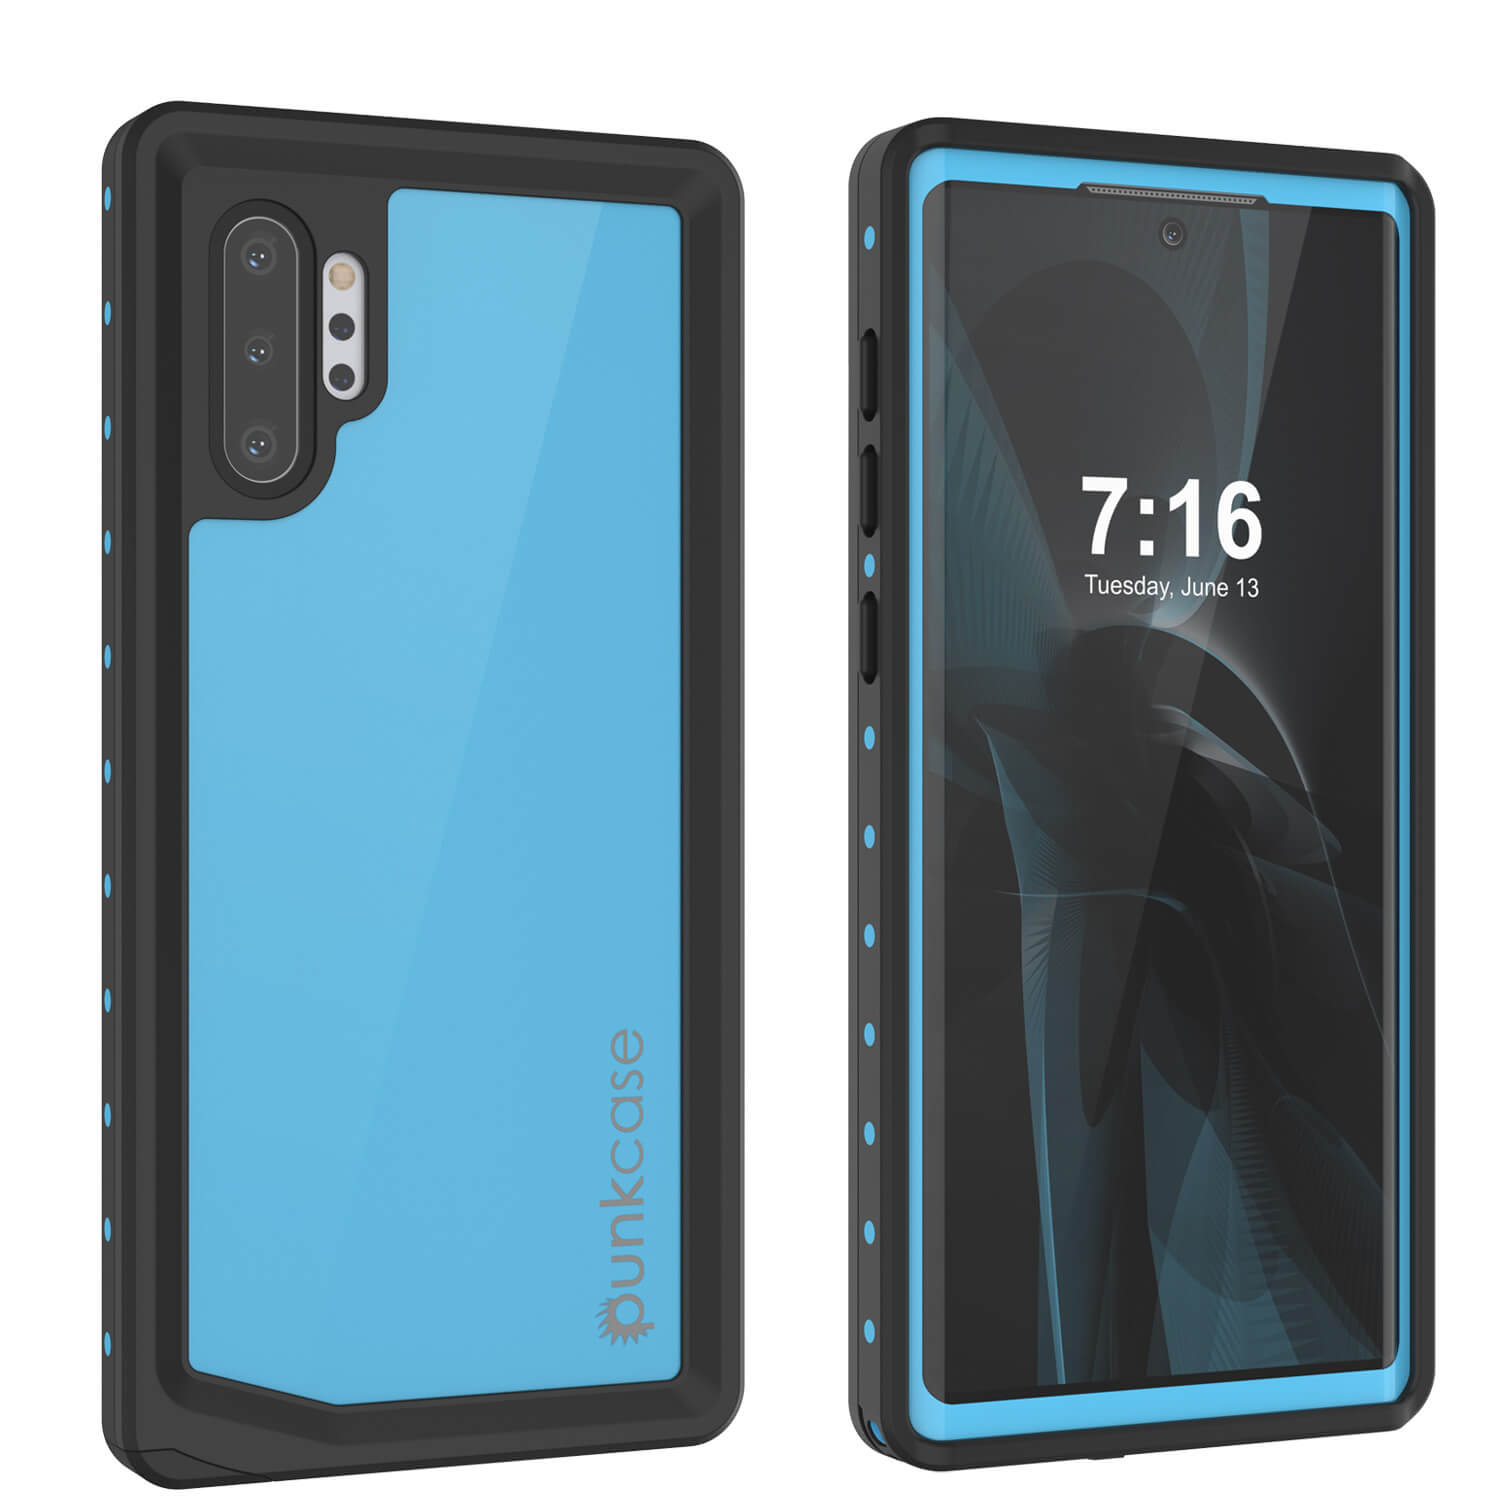 Galaxy Note 10+ Plus Waterproof Case, Punkcase Studstar Light Blue Thin Armor Cover